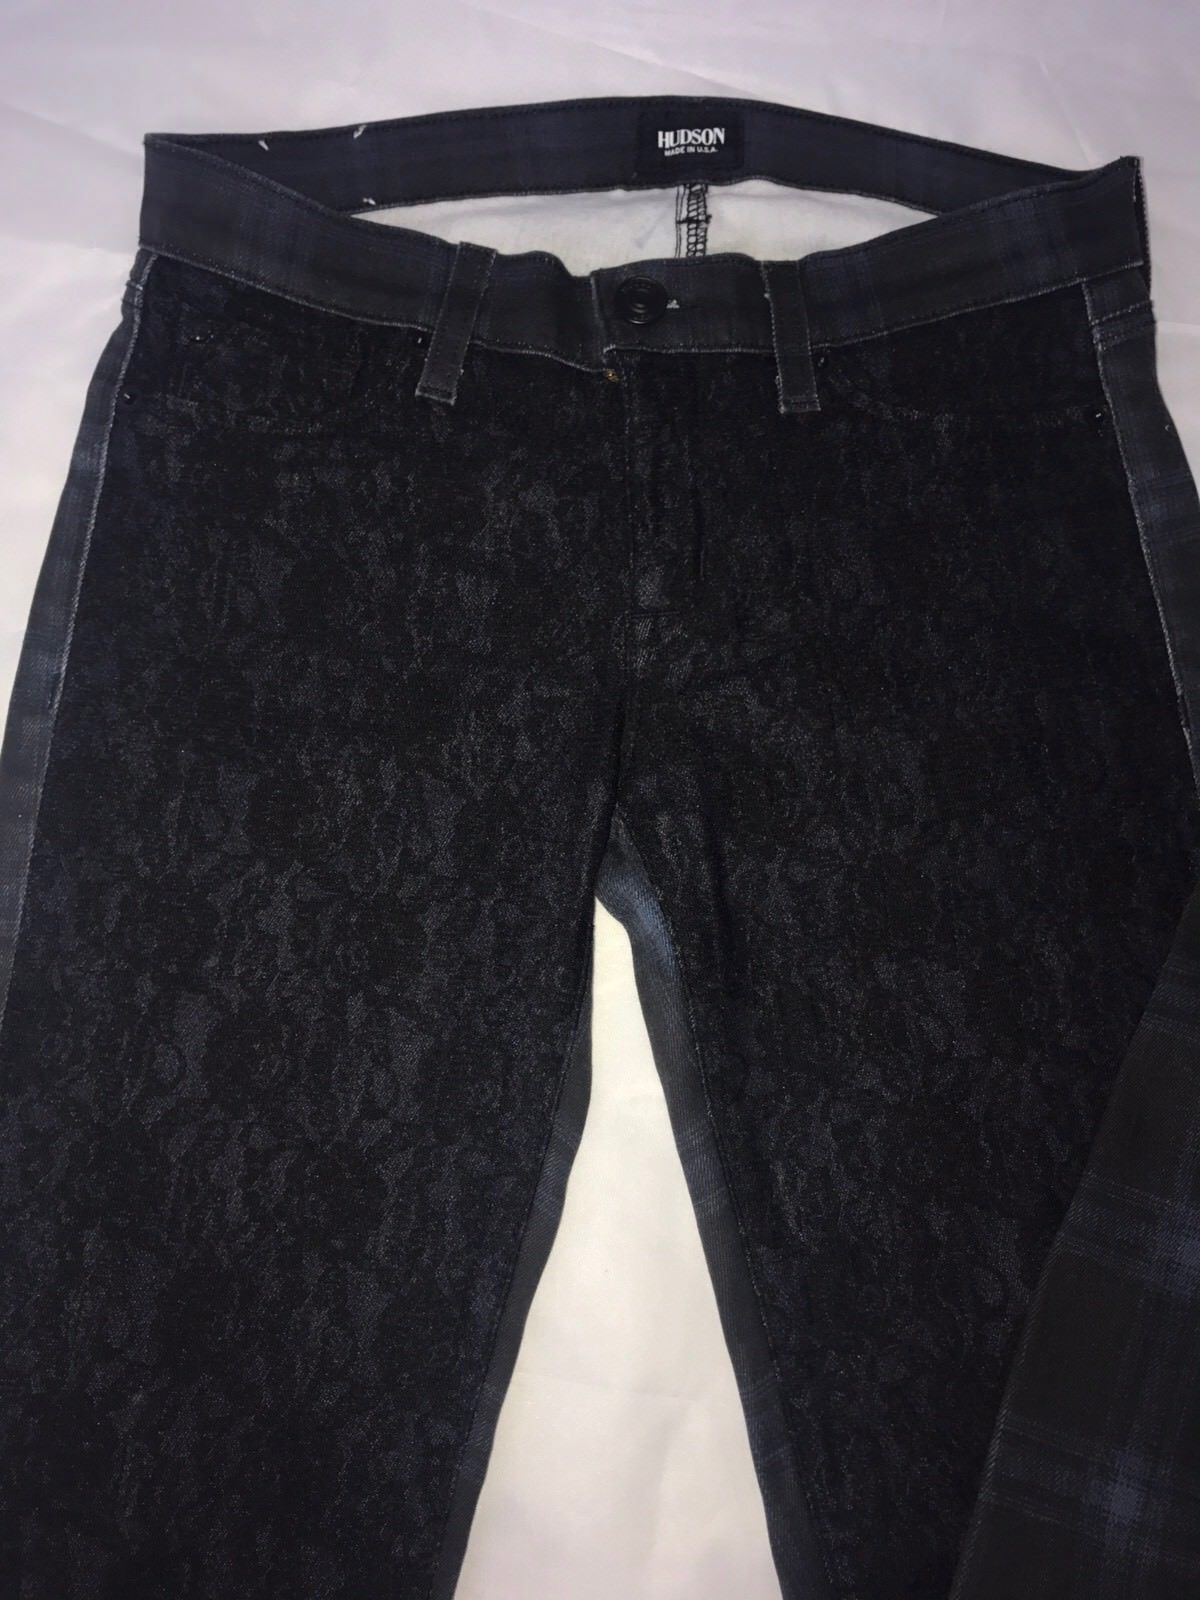 Hudson Super Skinny  Women's Vice Versa Jeans Size 26 US Made in USA - BAYSUPERSTORE